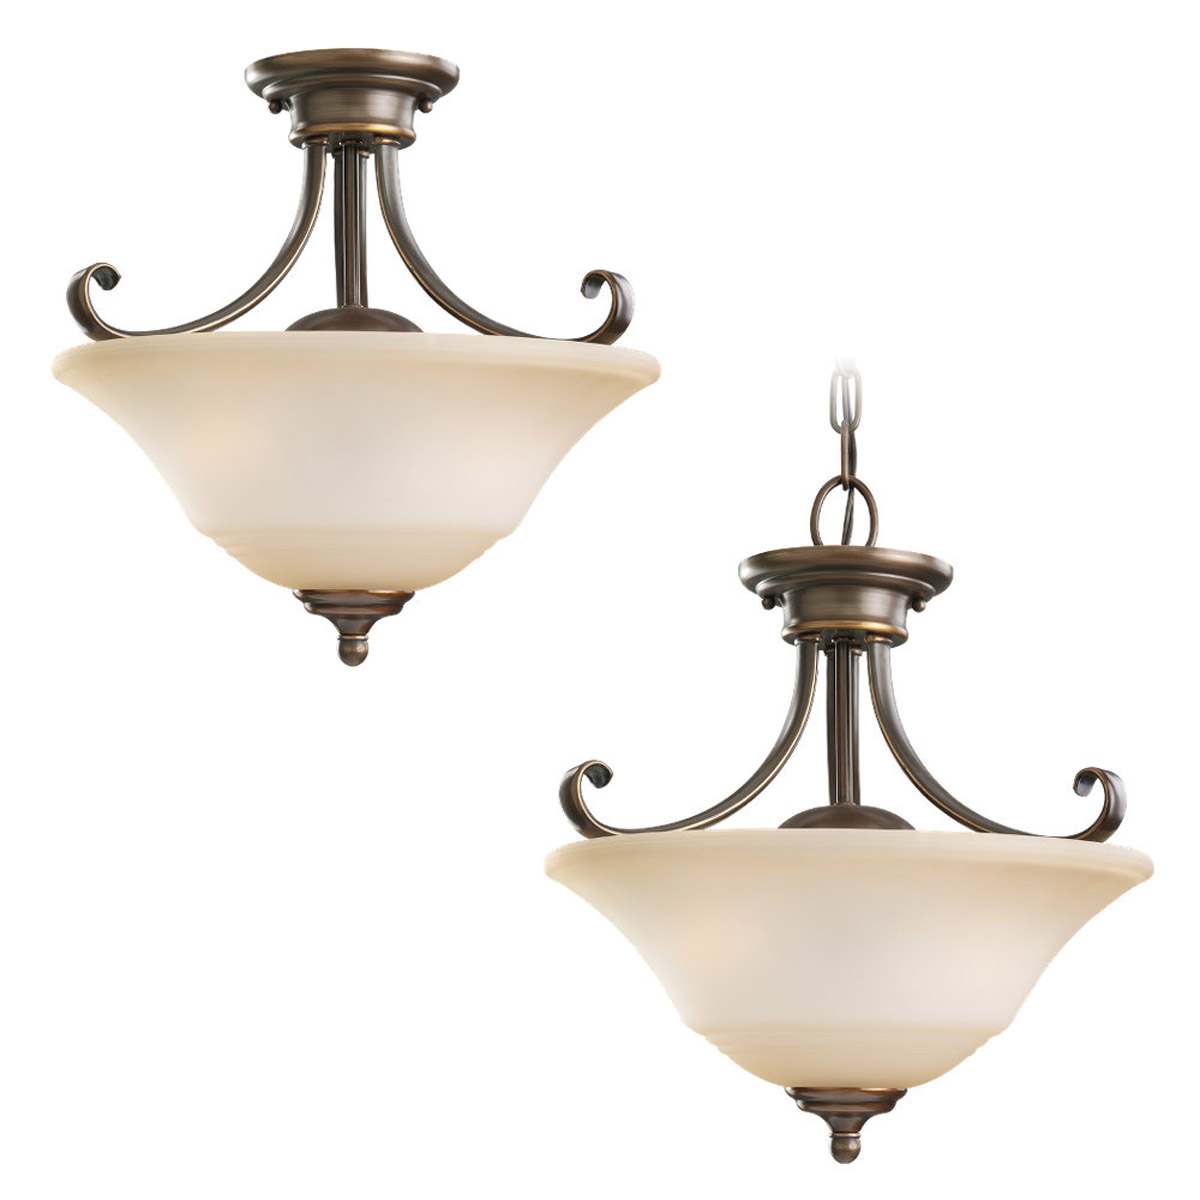 Sea Gull 77380-829 Parkview 2 Light 15 inch Russet Bronze Semi-Flush Mount Ceiling Light in Ginger Glass photo